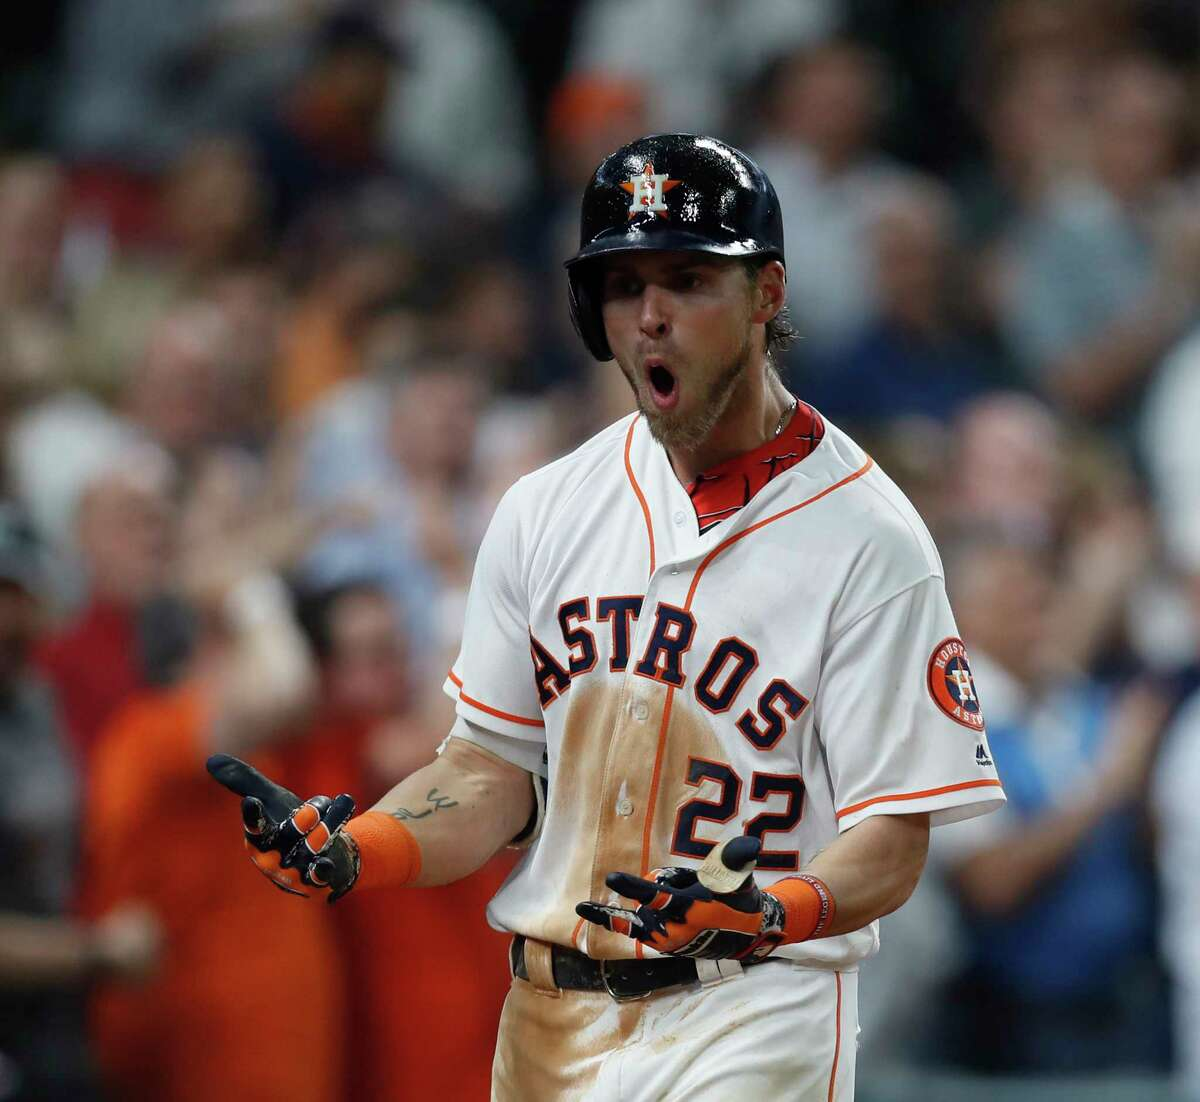 Houston Astros Josh Reddick (22) reacts after hitting his home run during the seventh inning of an MLB baseball game at Minute Maid Park, Wednesday, April 19, 2017, in Houston. ( Karen Warren / Houston Chronicle )